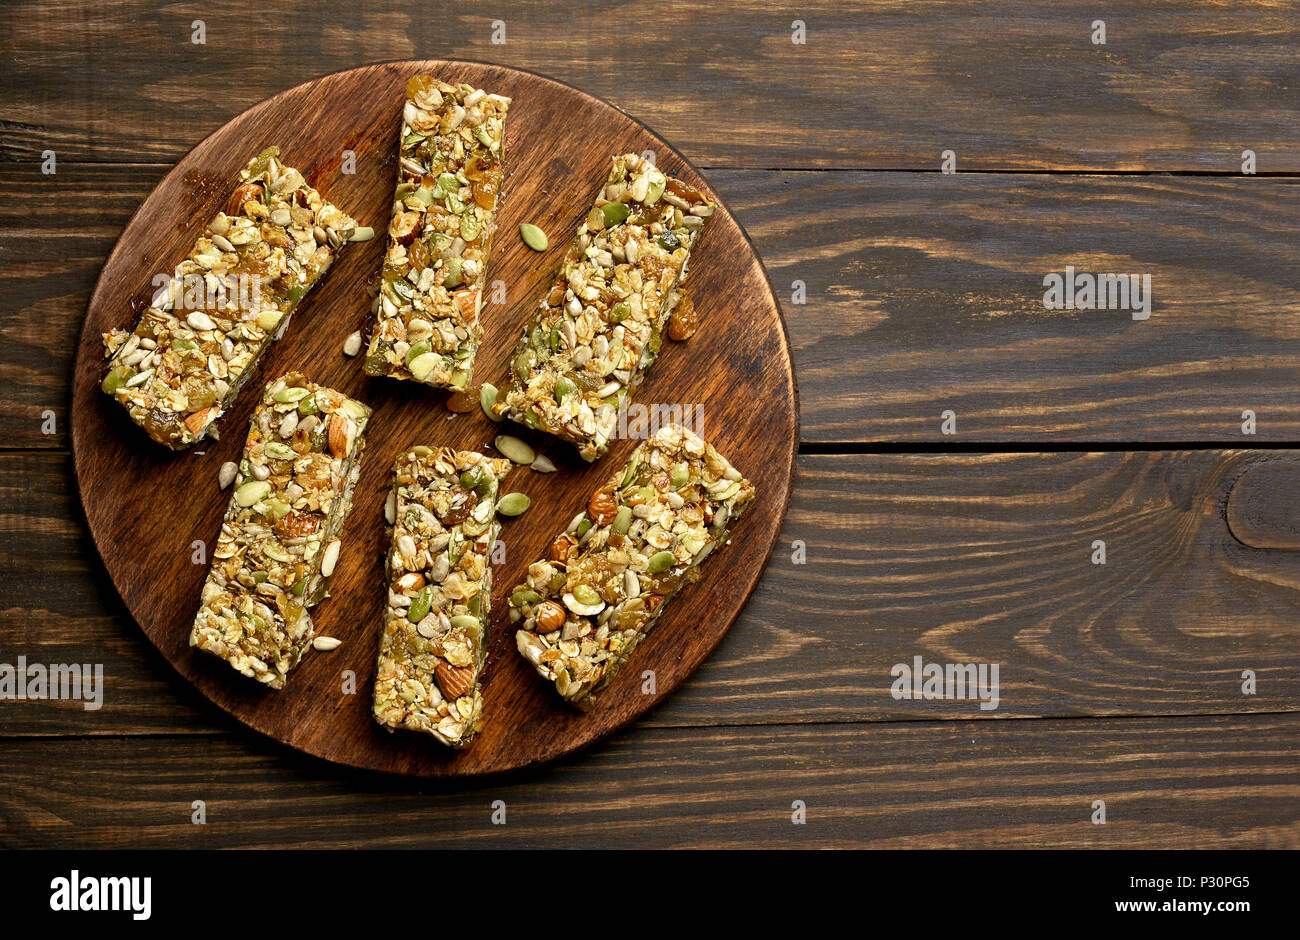 Granola bars. Healthy energy snack on wooden board. Top view, flat lay - Stock Image